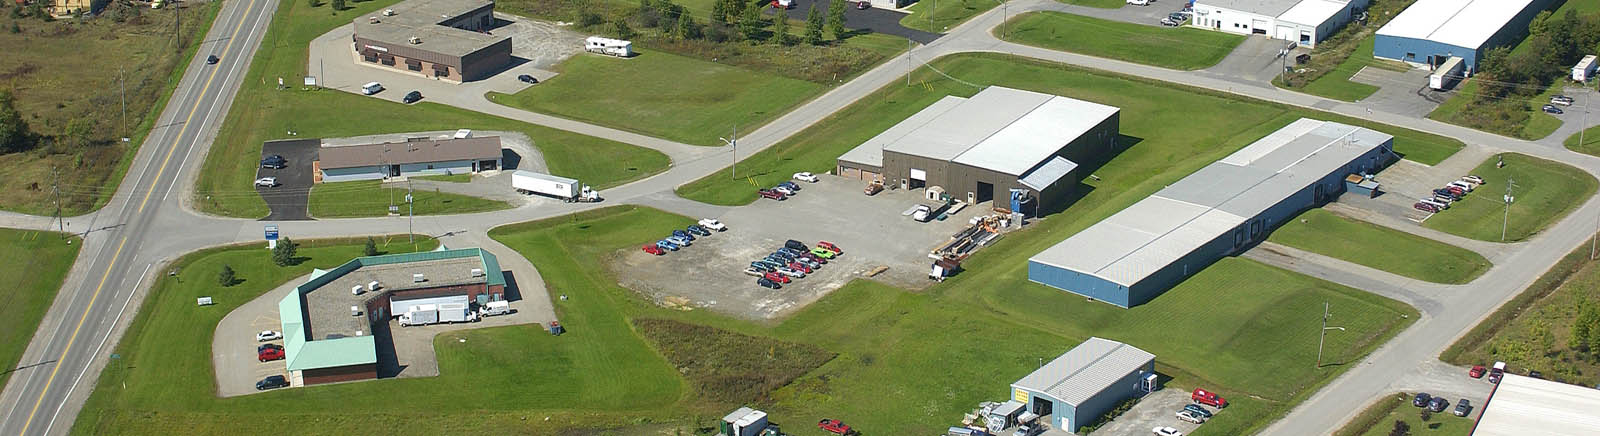 Aerial view of Elizabethtown Kitley Business Park